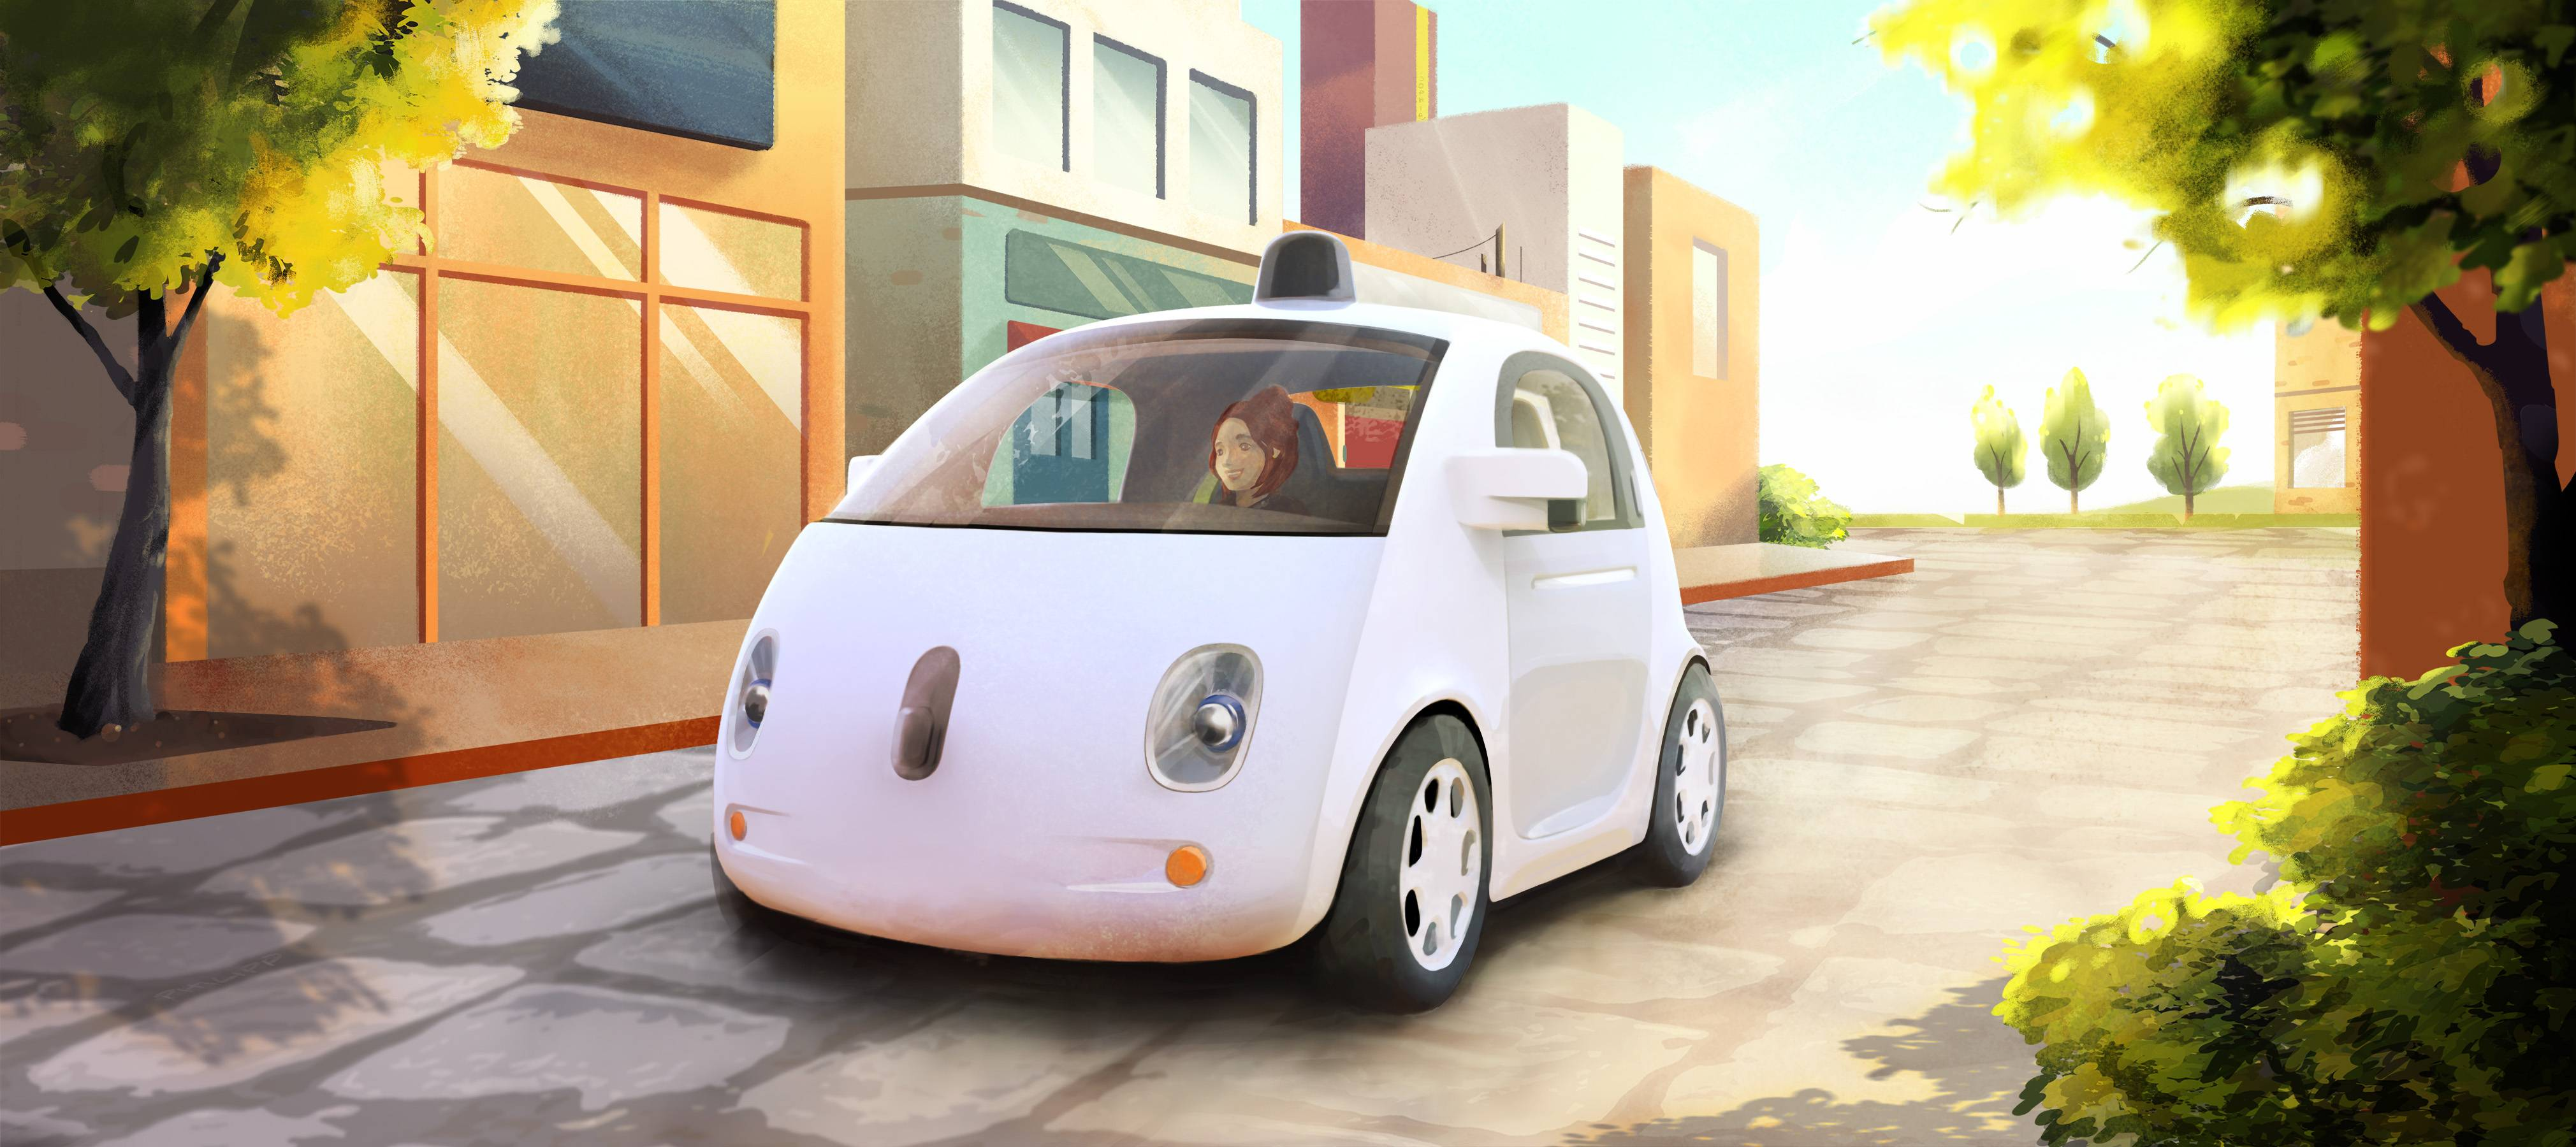 Google announced May 27 that it plans to deploy at least 100 fully autonomous vehicles that it designed in tests starting this year. The two-seat cars will have a top speed of 25 miles (40 kilometers) per hour and no steering wheel.